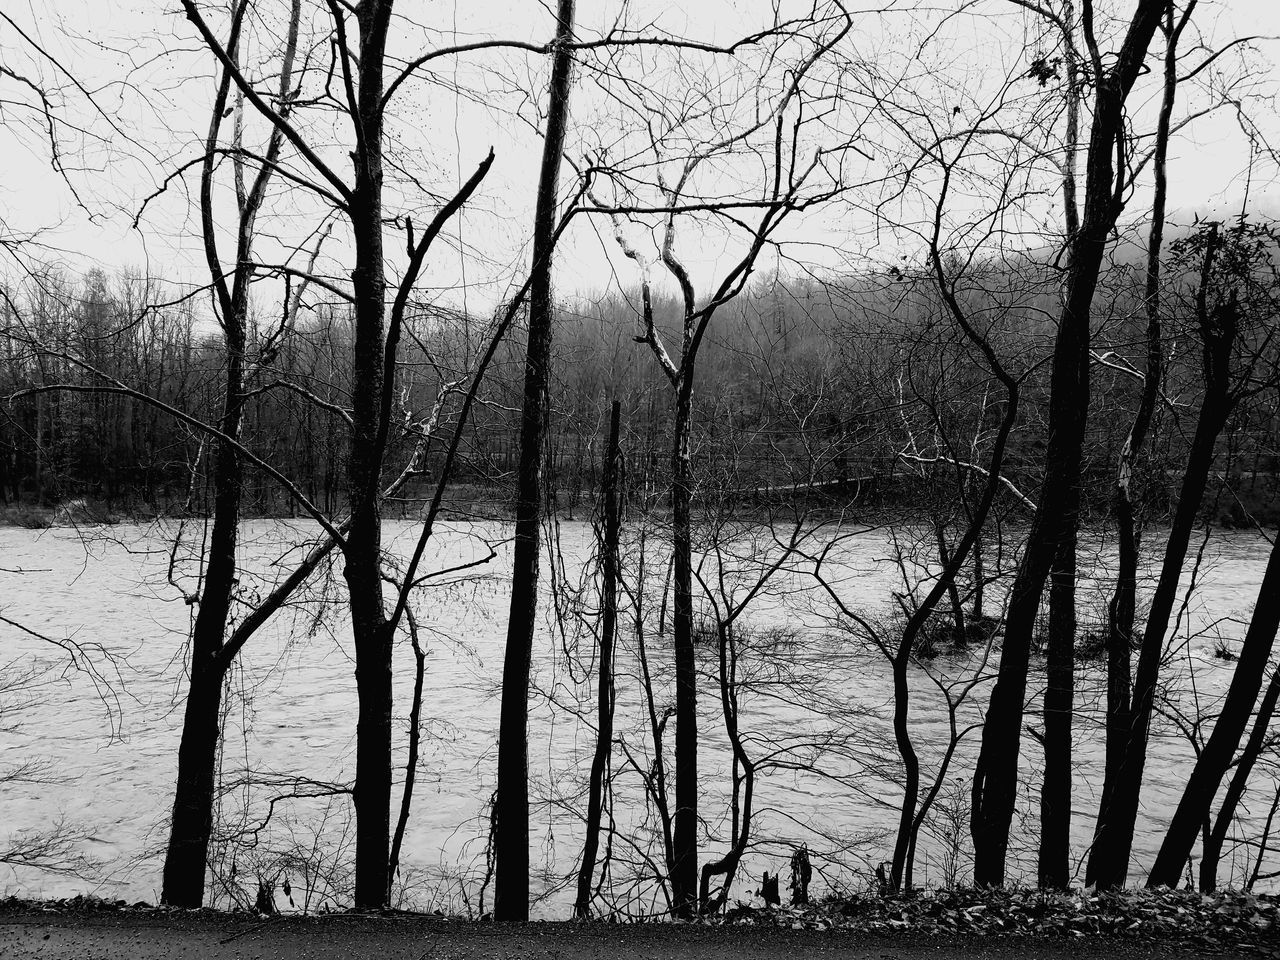 Tree Water No People Nature Wet Sky Bare Tree Outdoors Day Beauty In Nature Close-up Blackandwhite Riverside